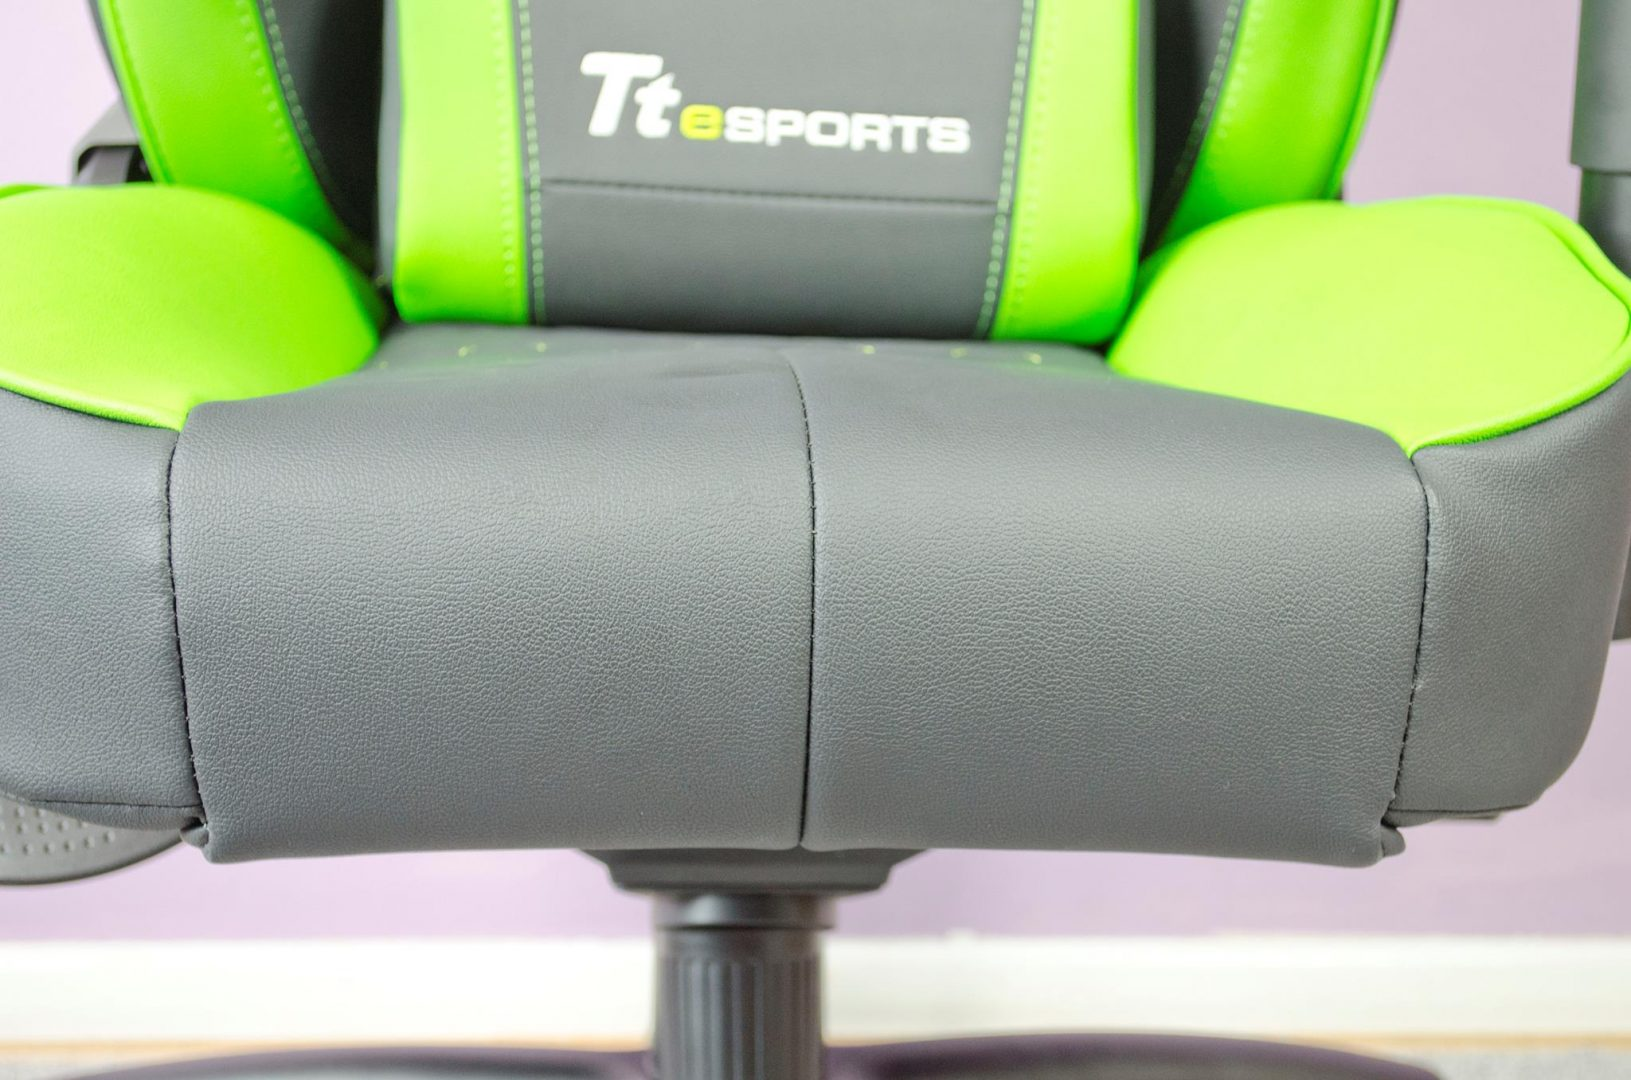 tt esports gt comfort gaming chair_27